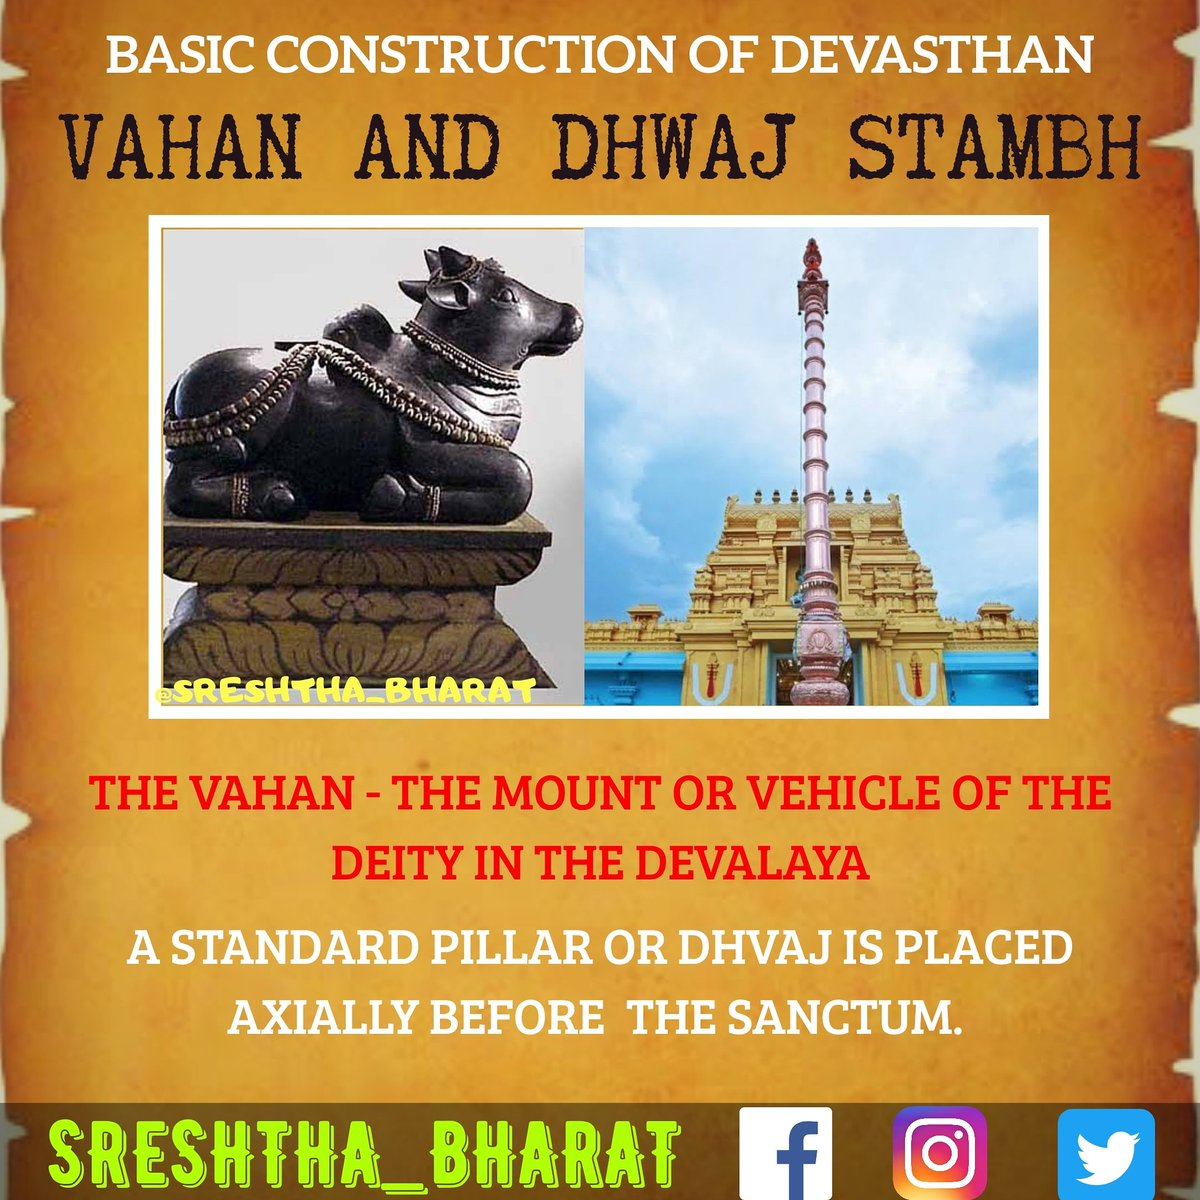 #temple_architecture  We will be getting closer to the Great Temple Architecture of our Sreshtha Bharat  Follow @Sreshthabharat on Facebook | Instagram | Twitter 🙏  #indianculture #indianarchitecture #hinduarchitecture #temple  #worship #templeworship #dravida #mandir #devasthan https://t.co/C788ECWJgN